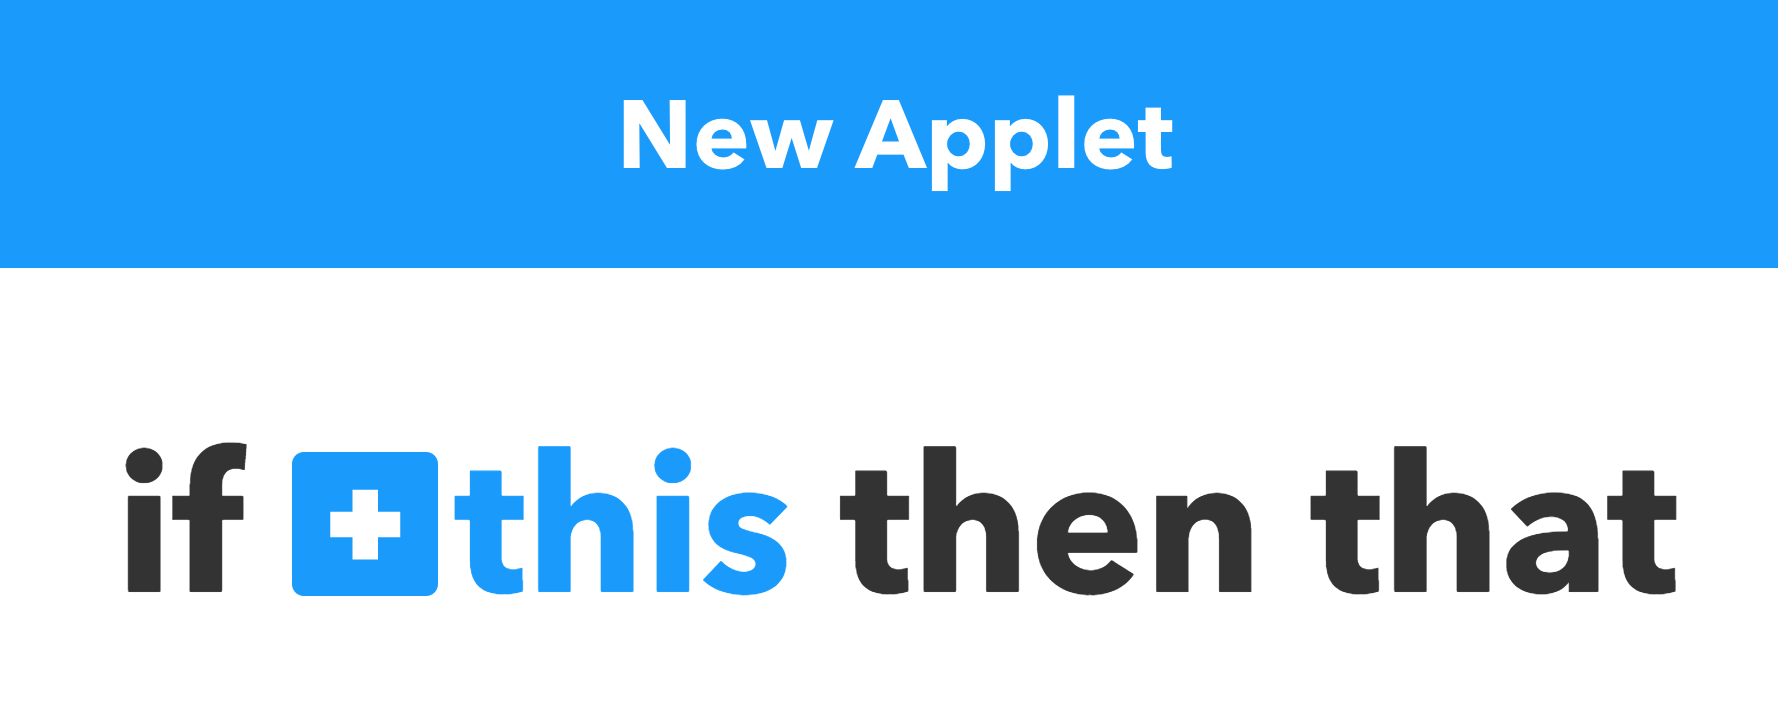 IFTTT Insta New Applet